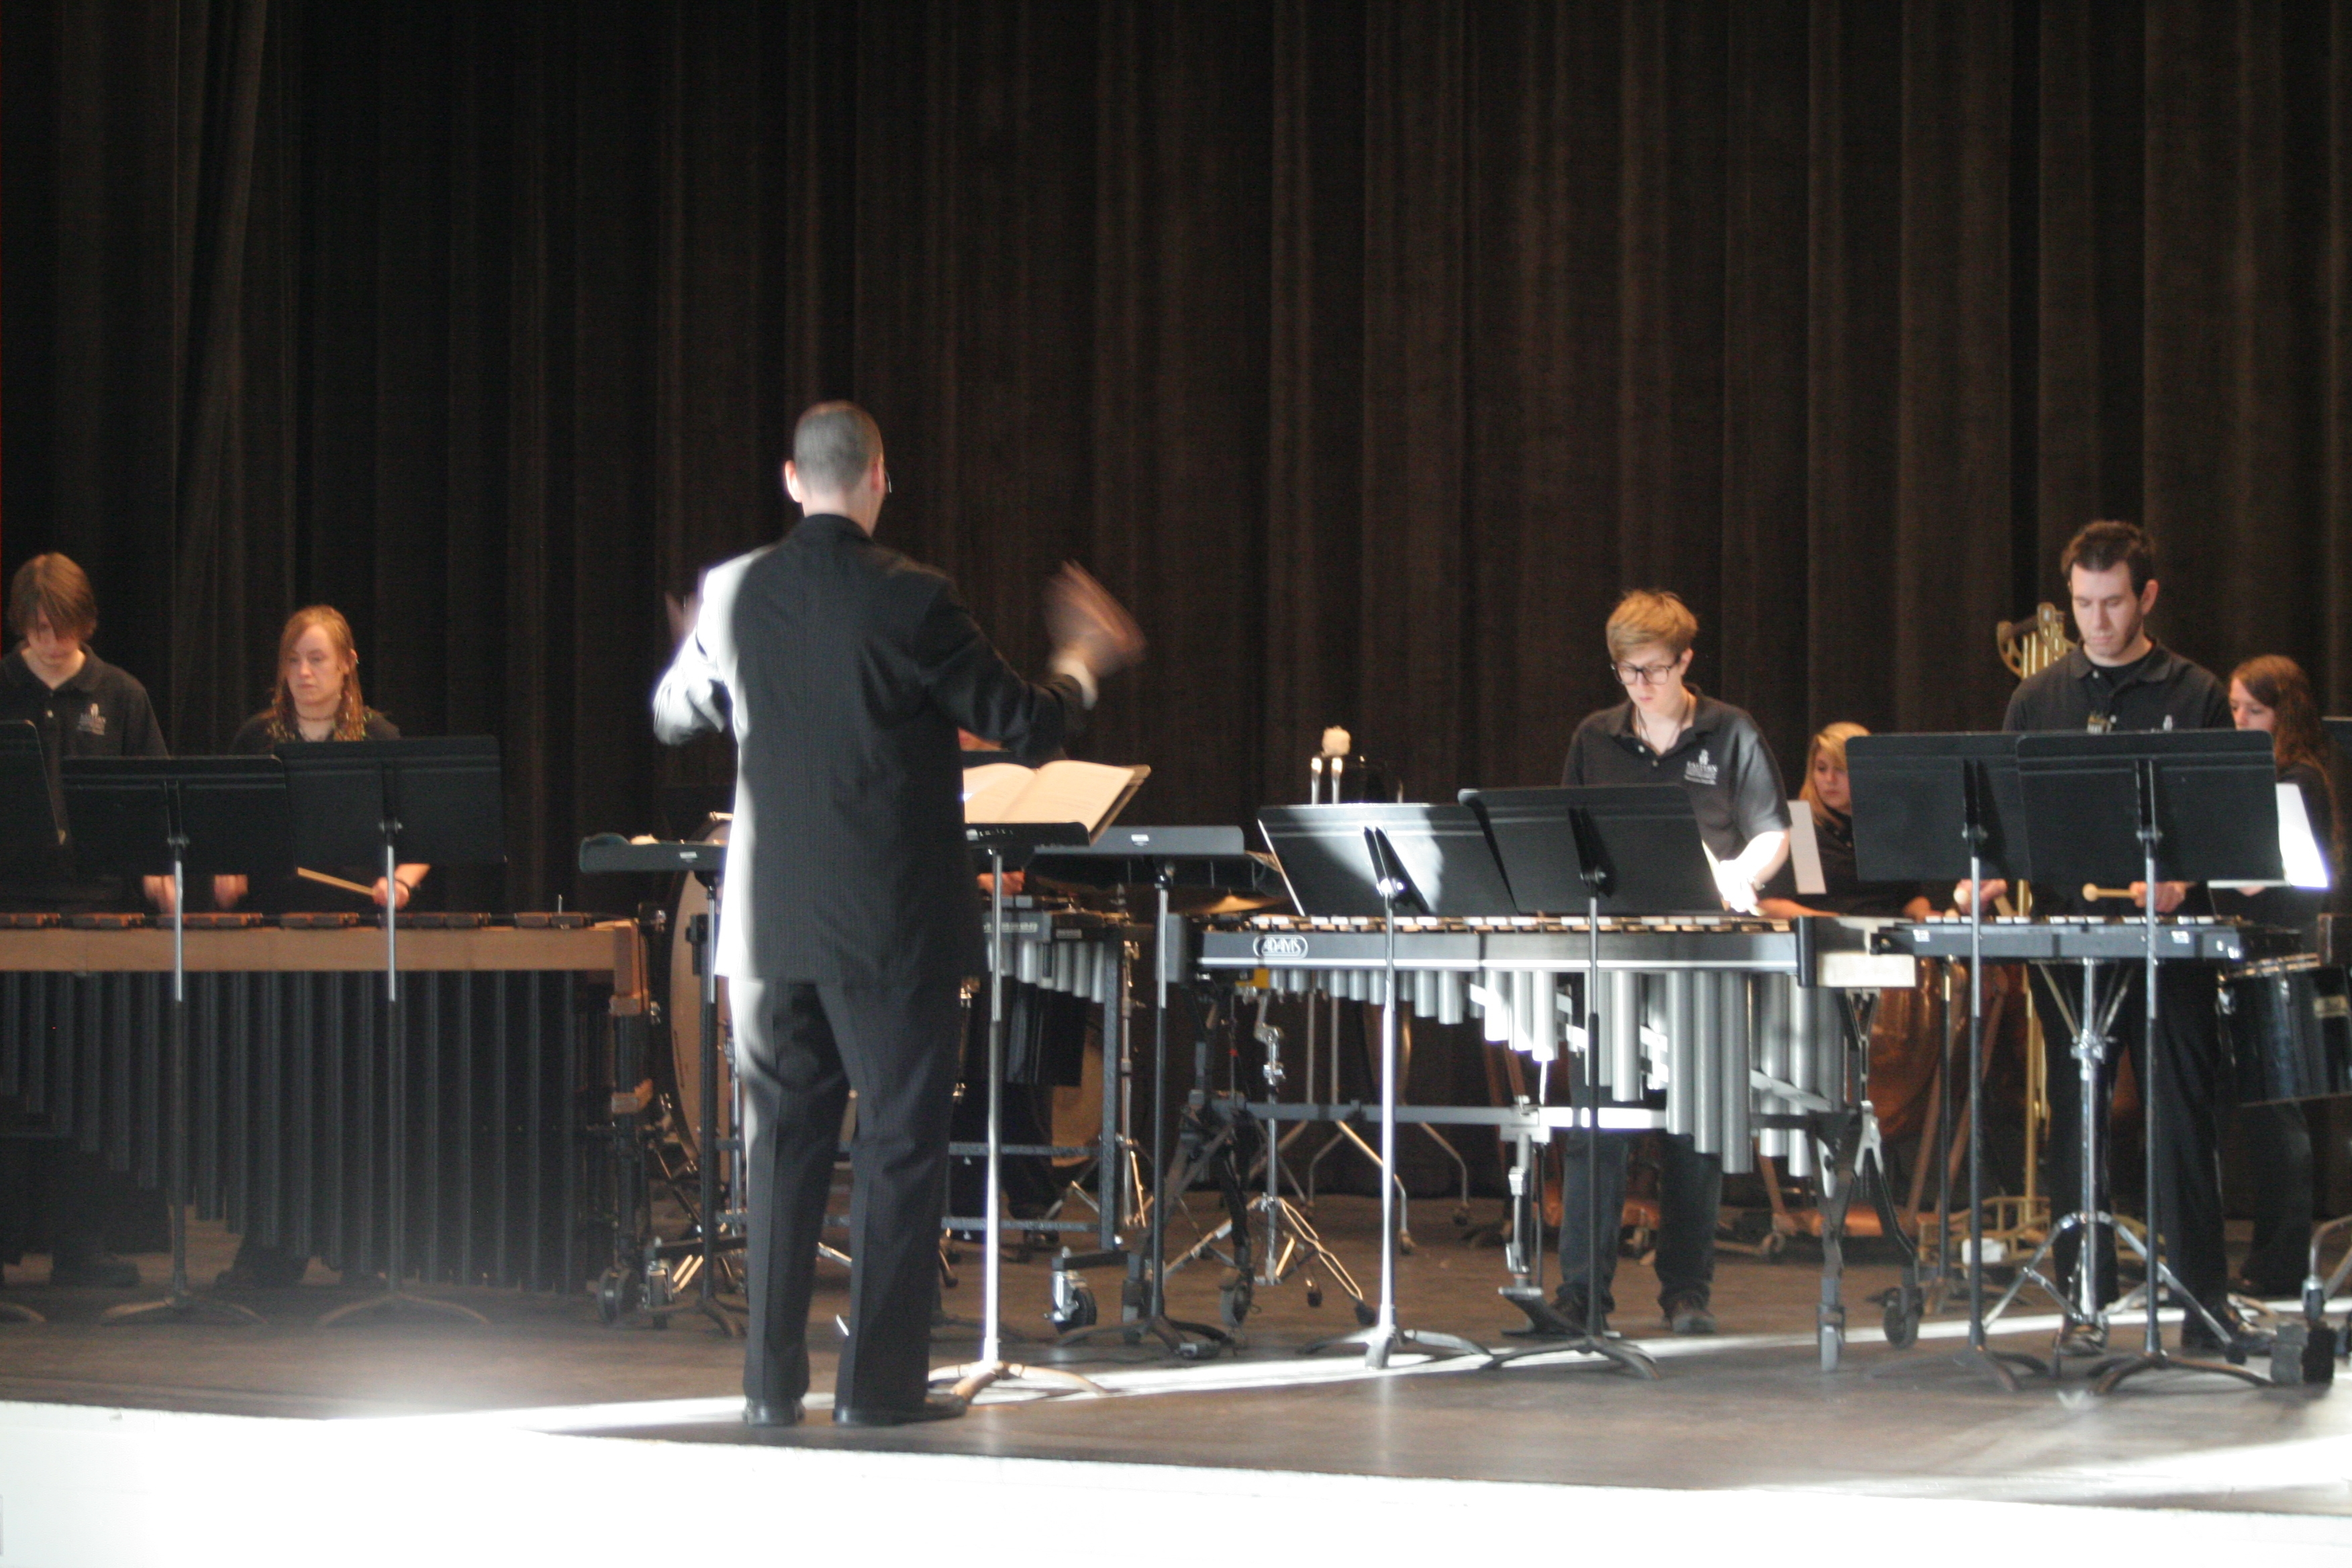 Photopercussion ensemble